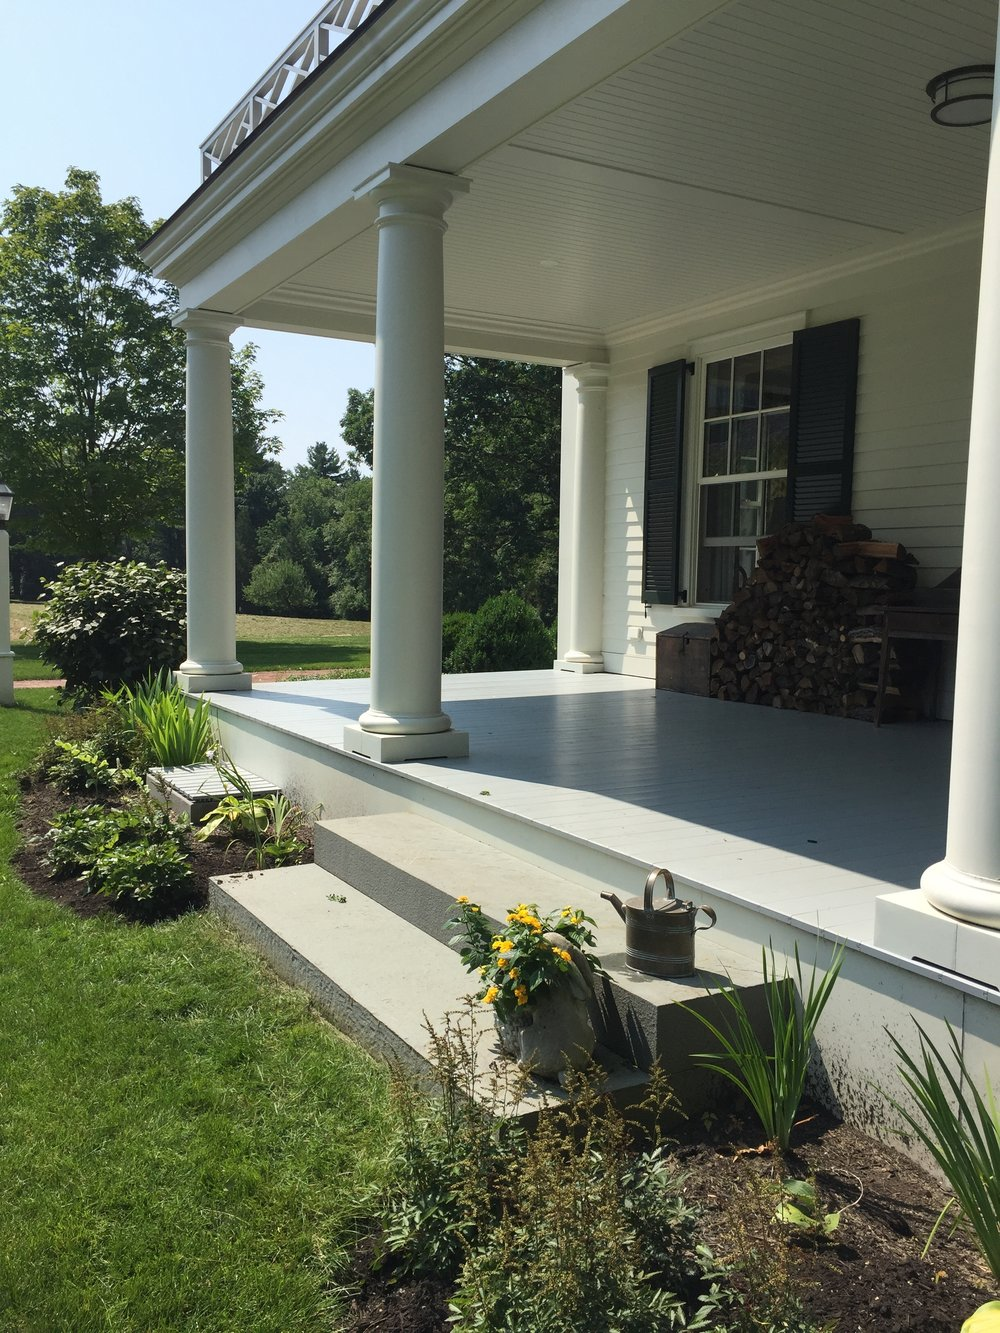 The side porch is just off of the parking area and serves as the main entrance for family - Photo: Linda Davis